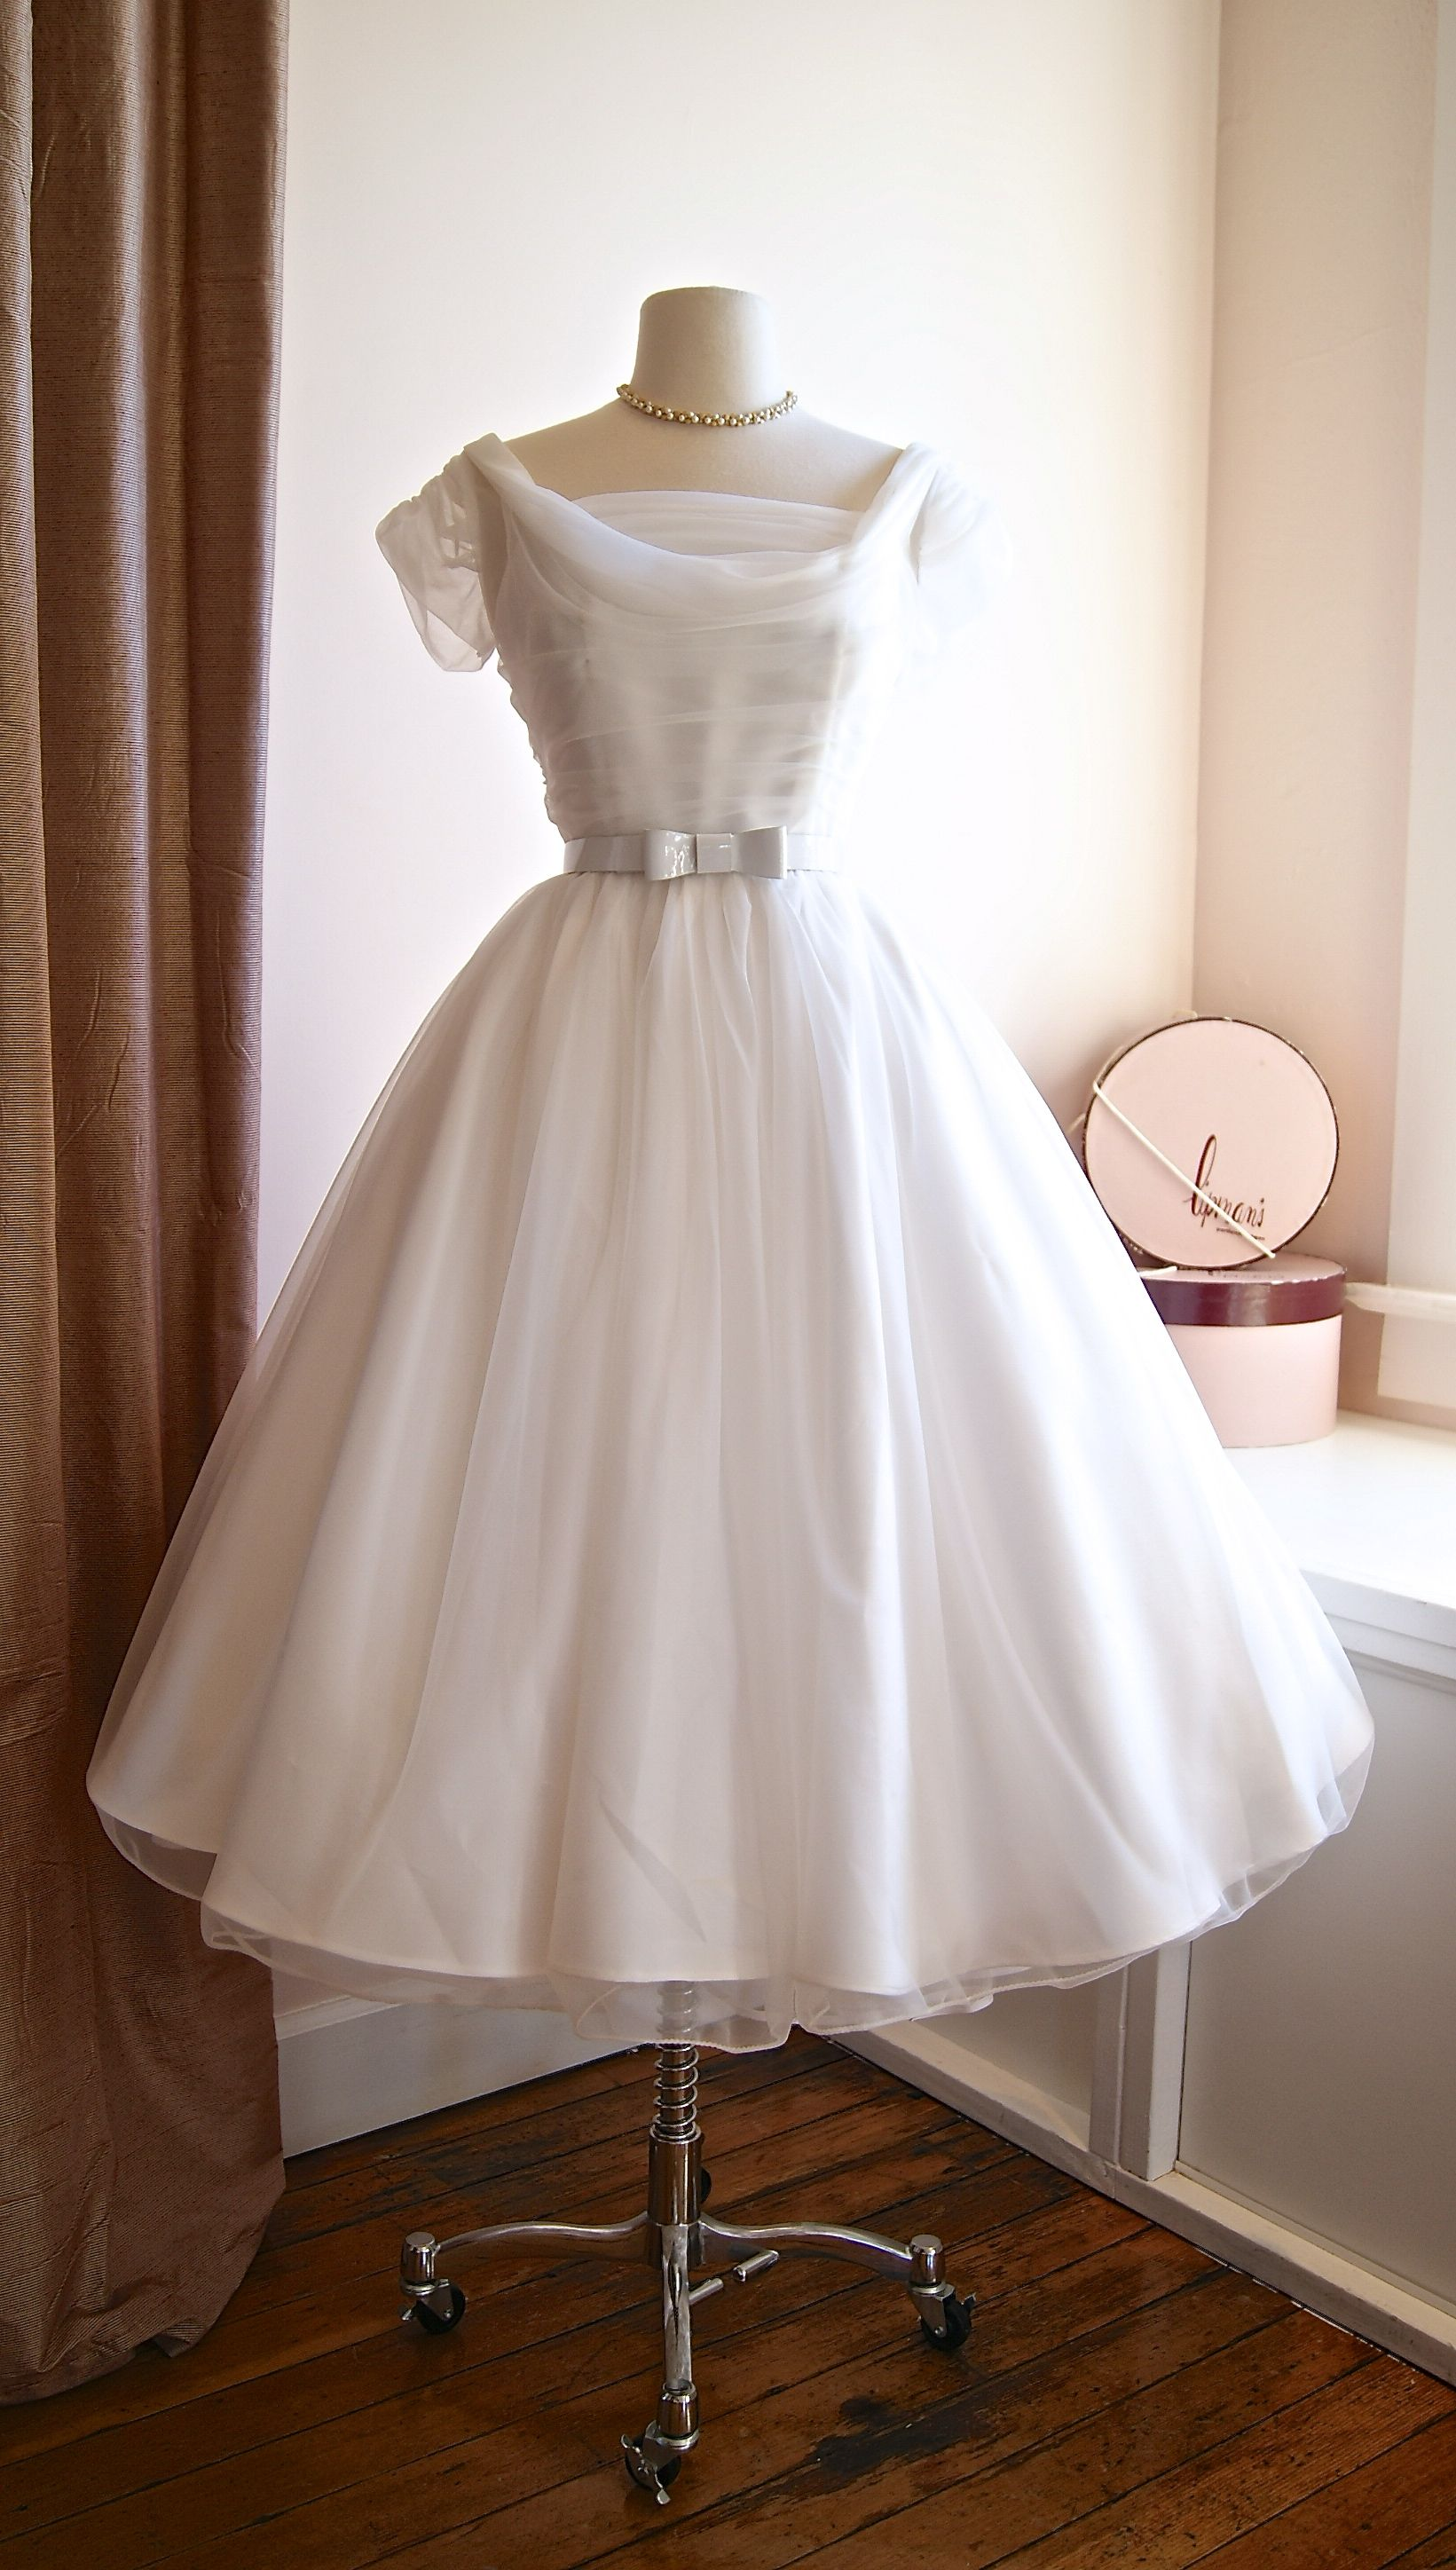 Us style wedding dress at xtabay xtabayvintage things i